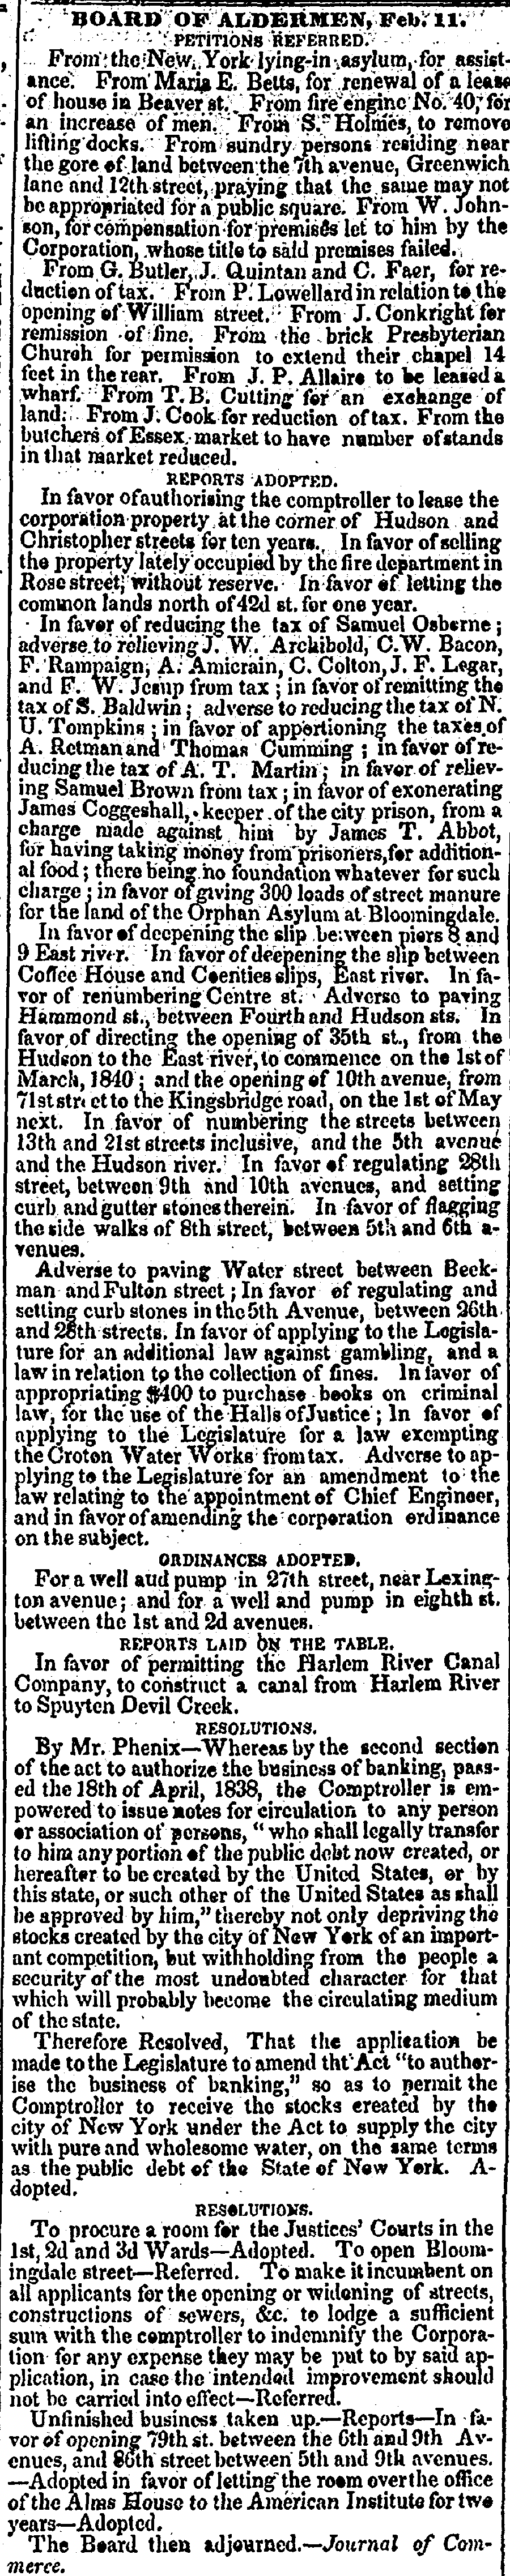 1839. Petition to Alderman. Eng. 40 for an increase of men.